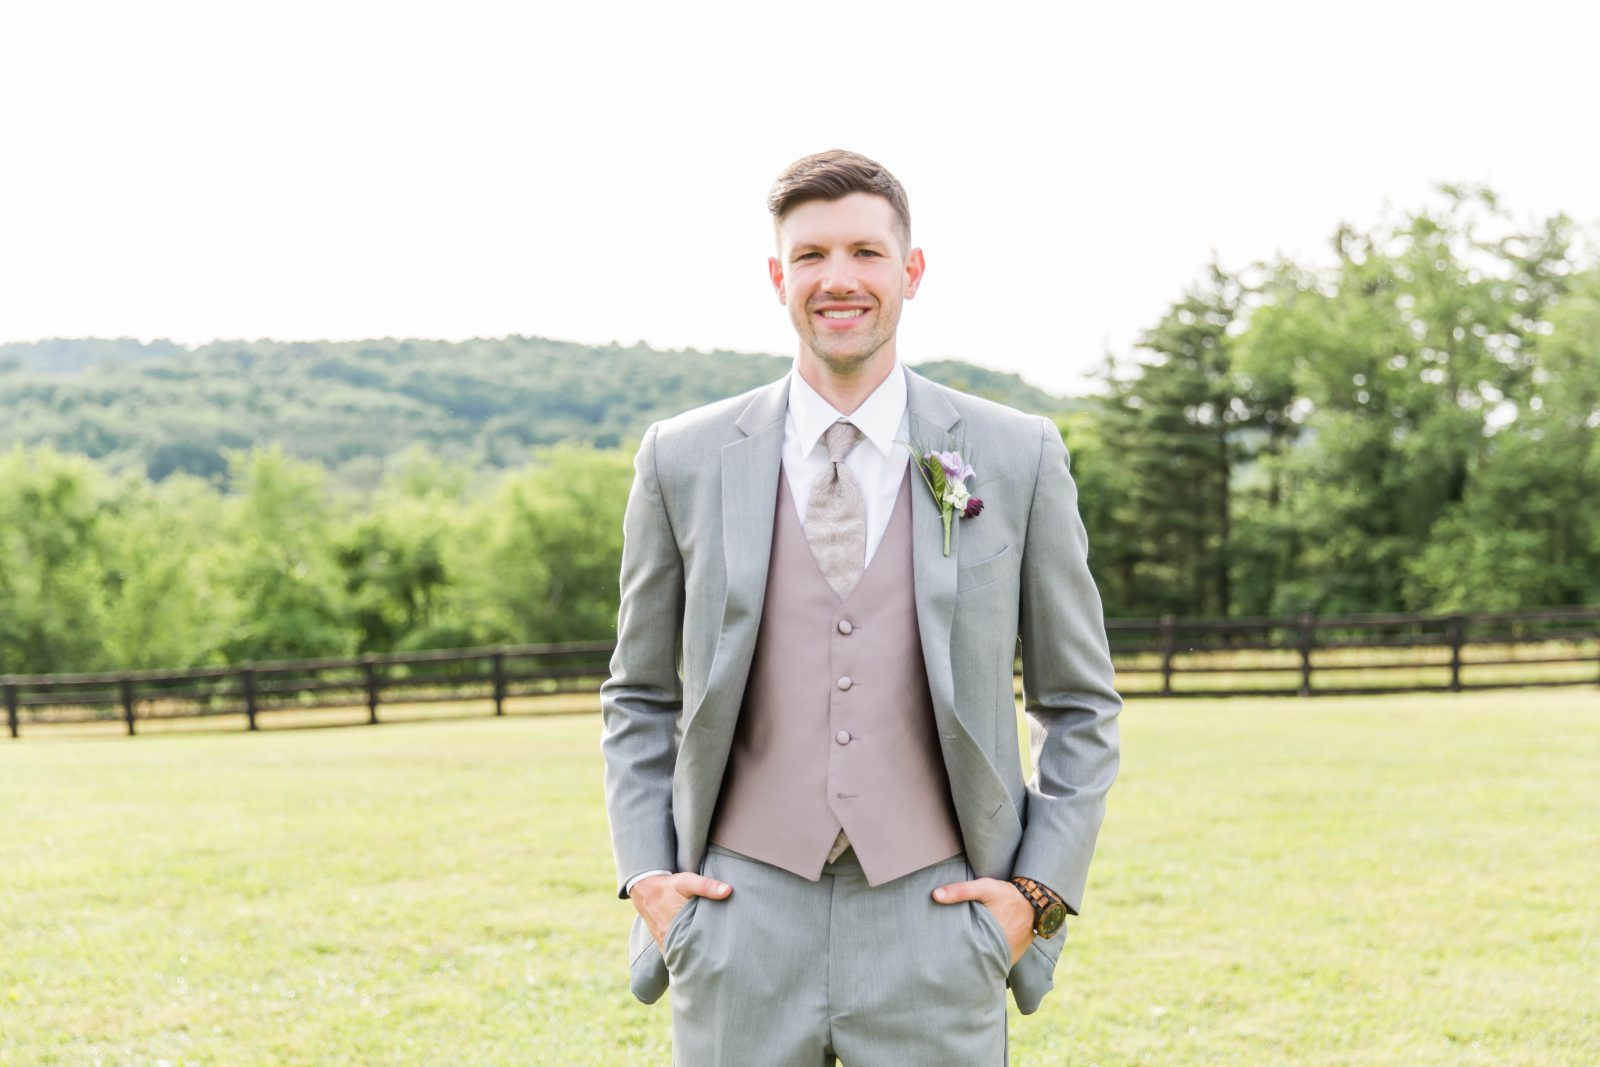 rivercrest-farm-summer-wedding-loren-jackson-photography-86